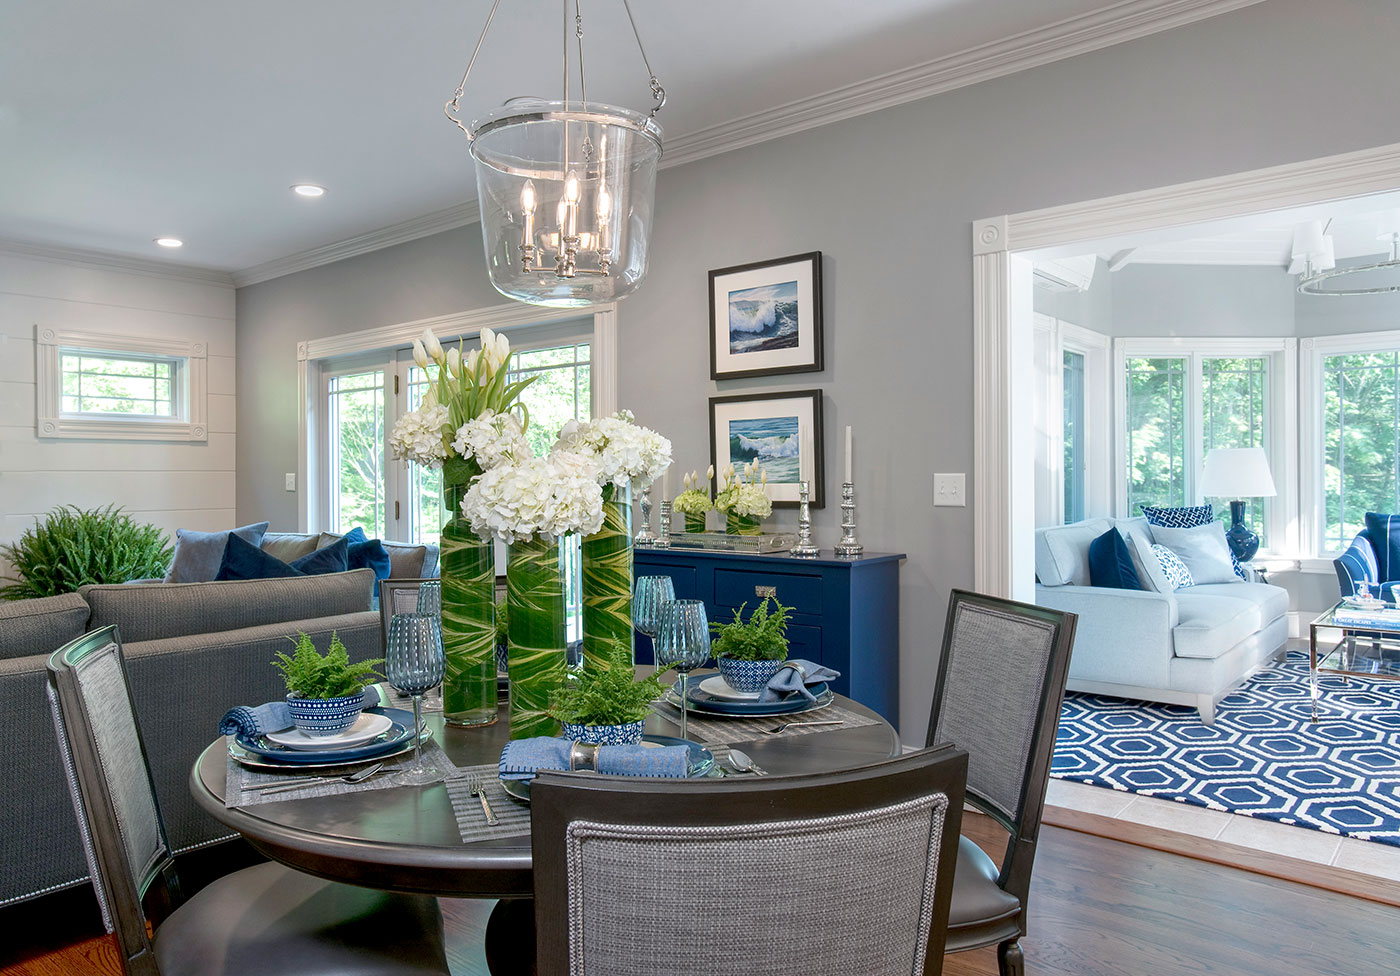 Elegant dining room with classic blue